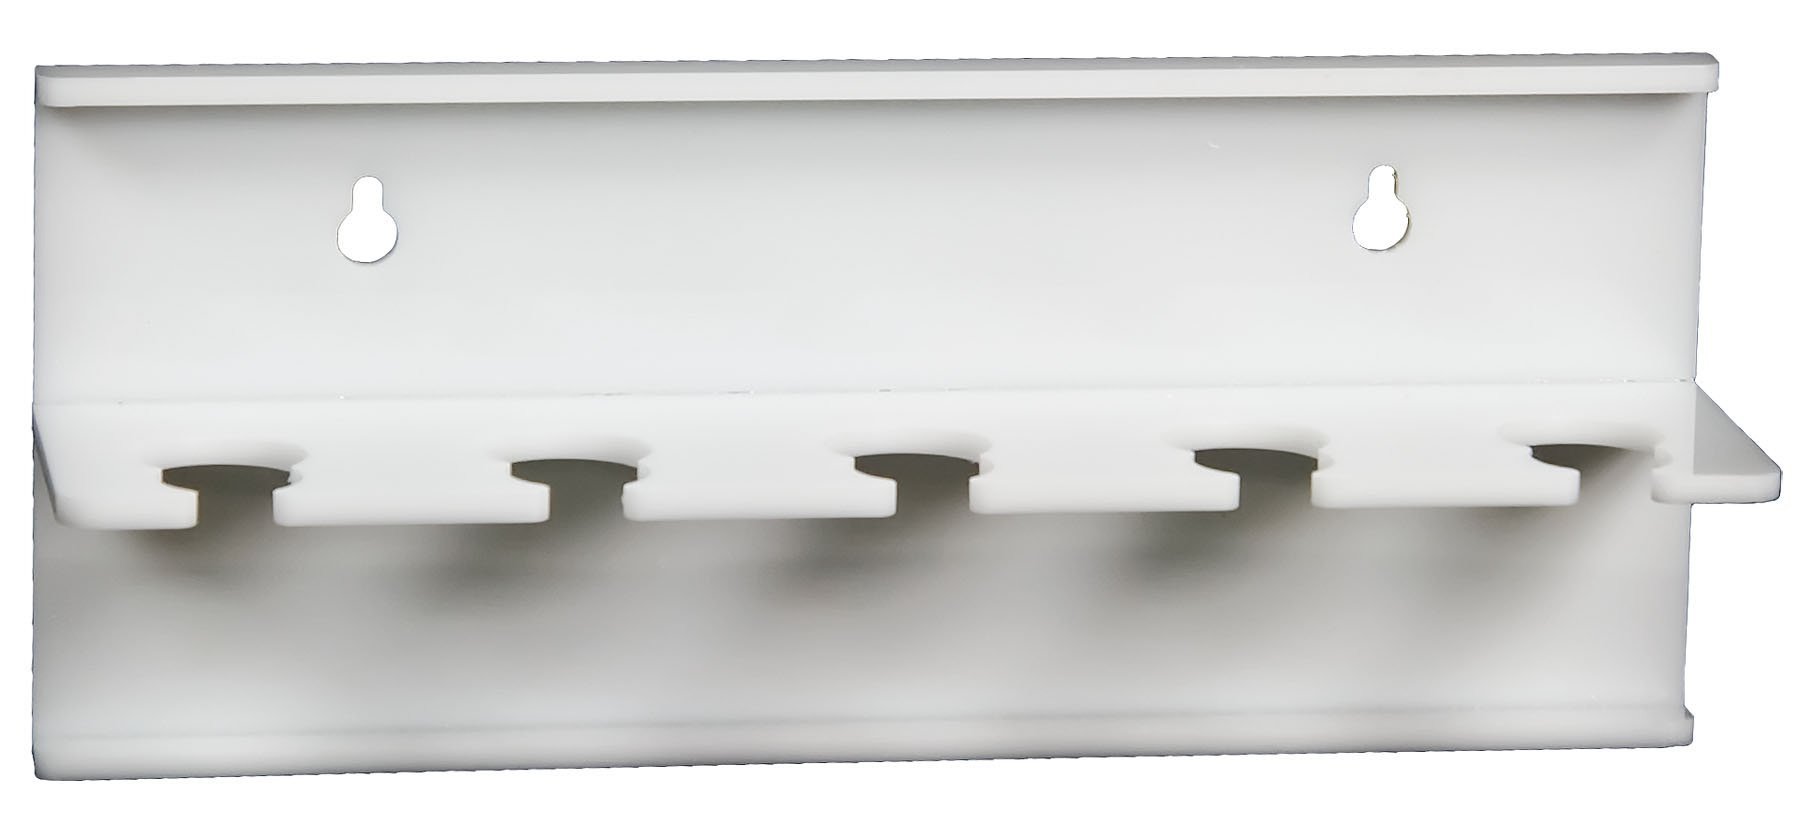 TrippNT 50696 Wall Mountable Auto Pipettor Holder with 5 Slots, 10'' x 5'' x 3'' WHD